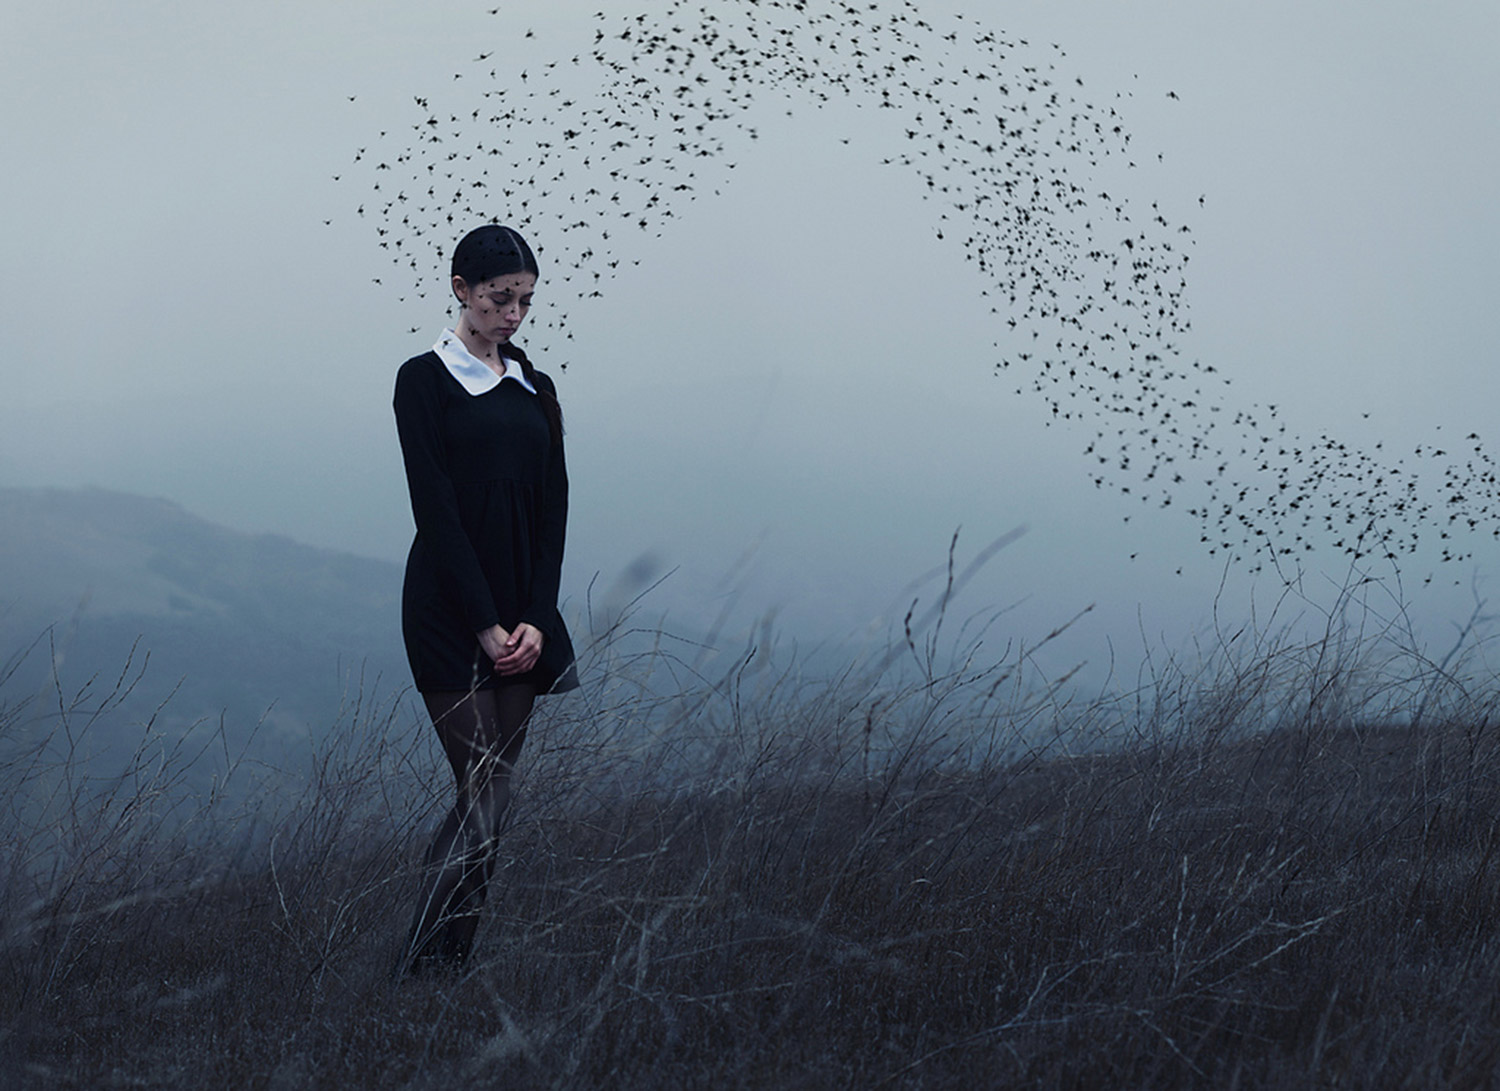 Alex Stoddard, In the Wake of Thunder, girl, storm clouds and a flock of birds